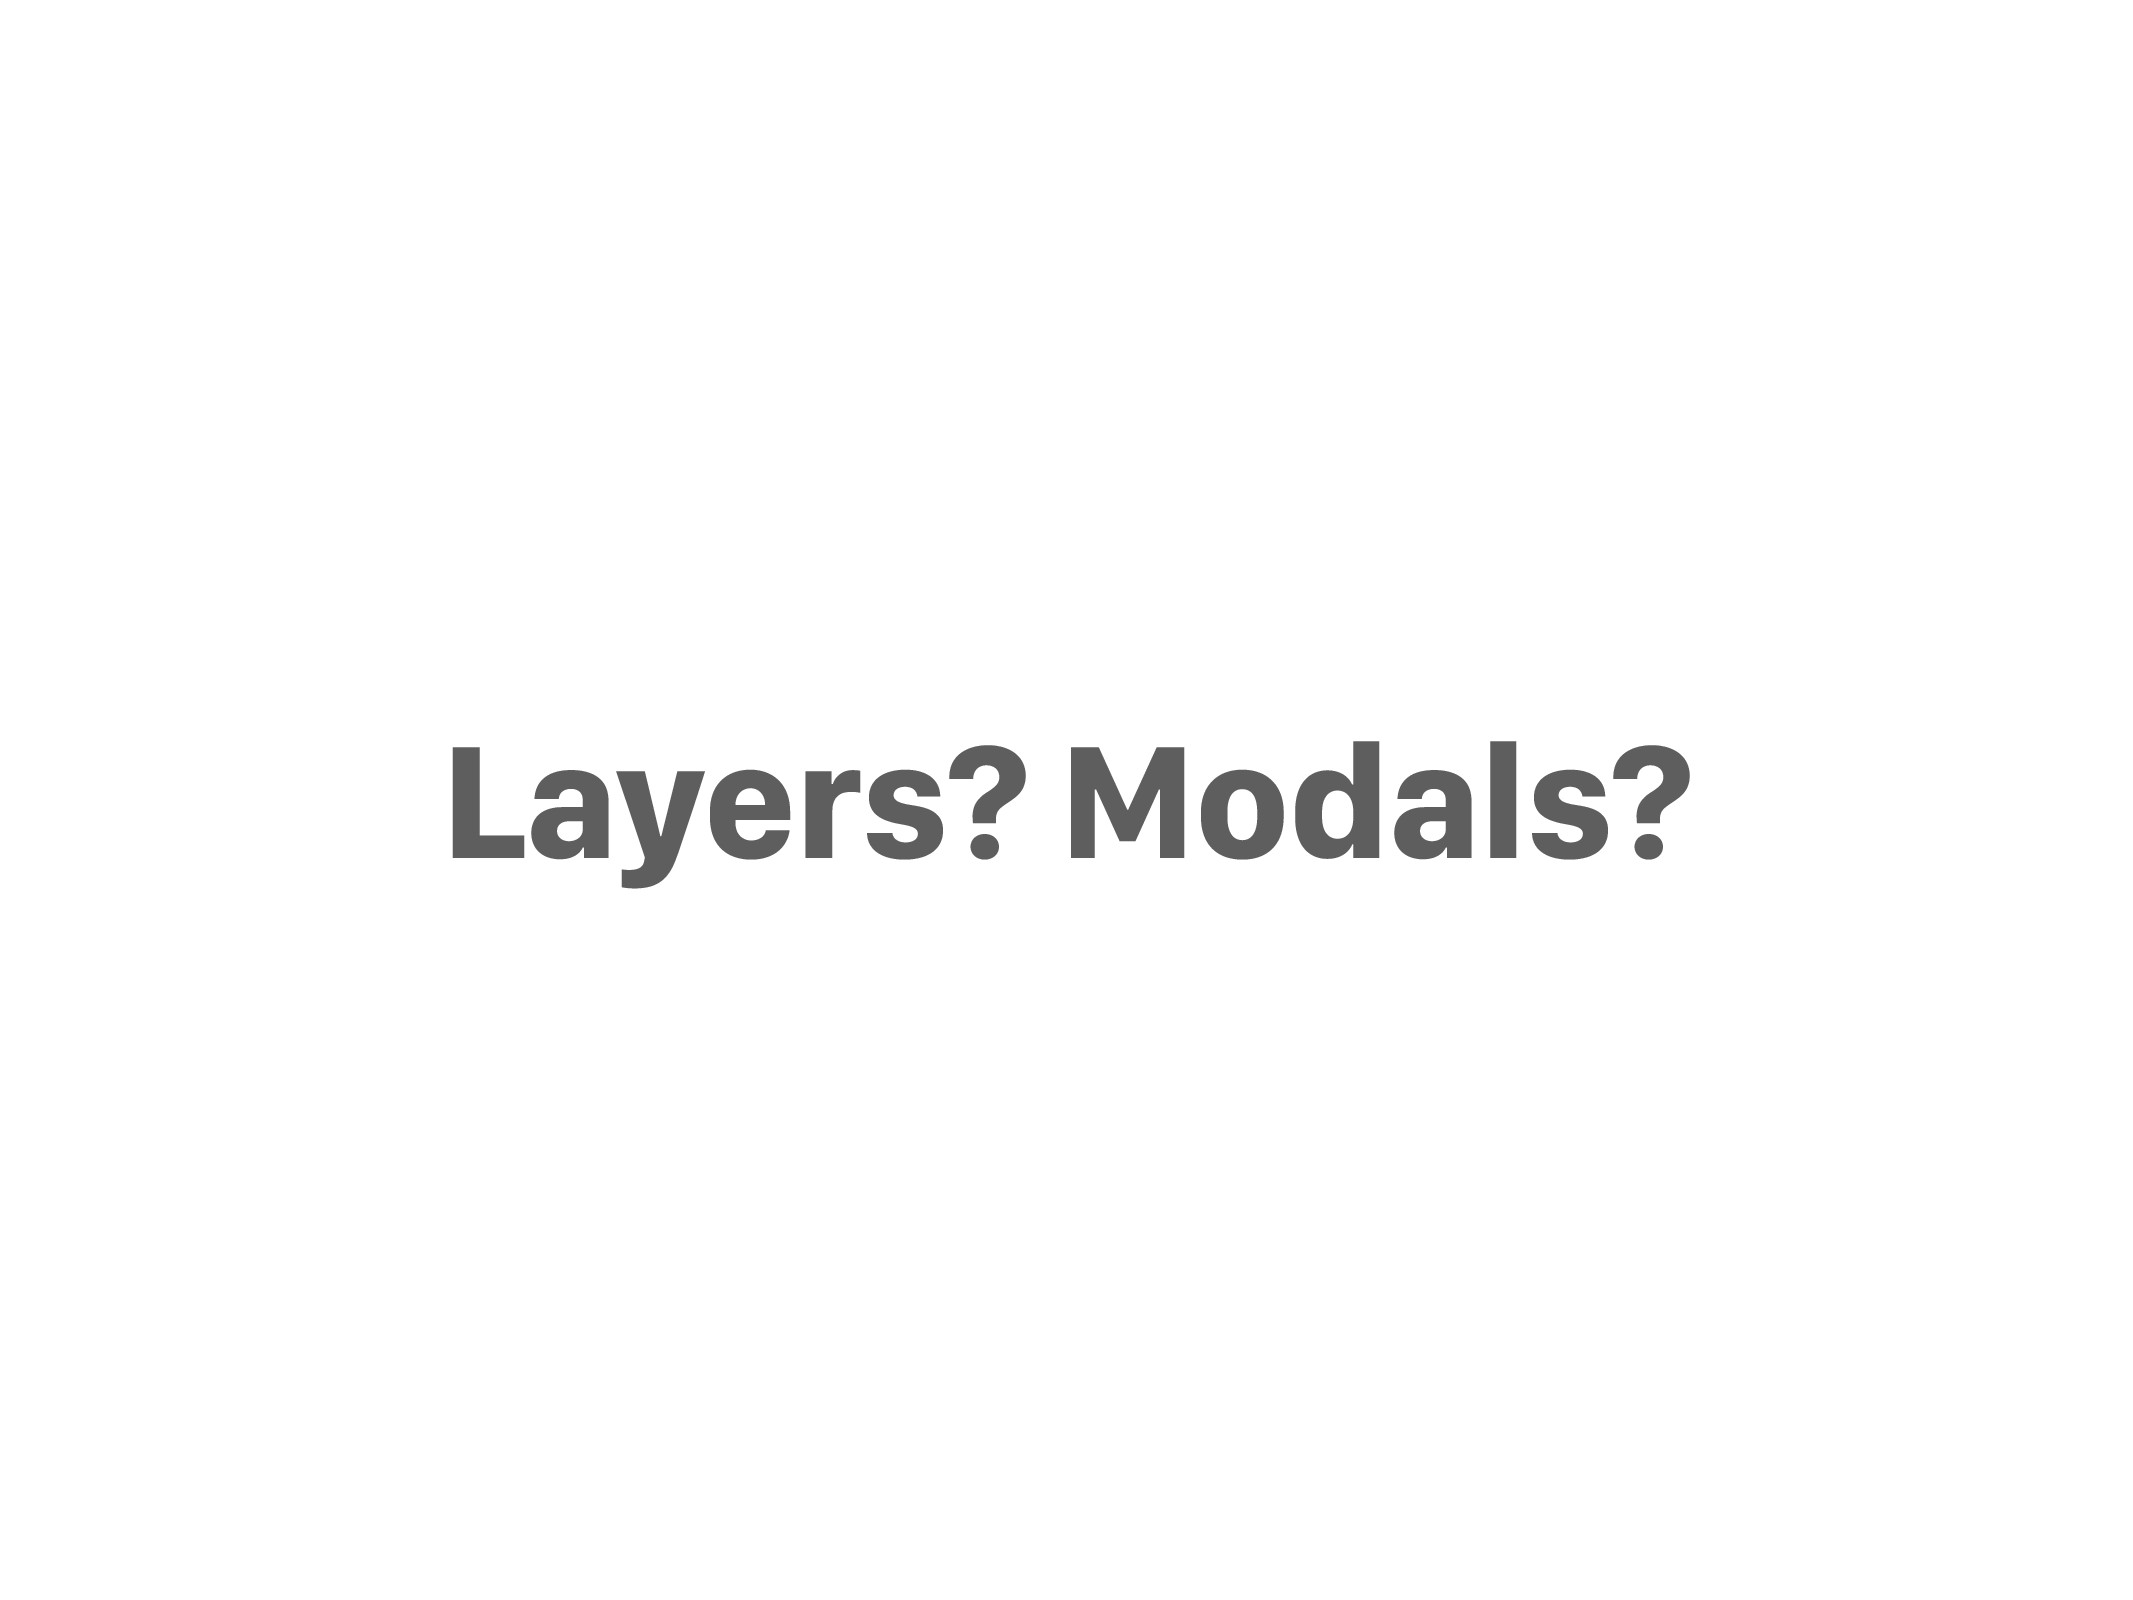 Layers? Modals?